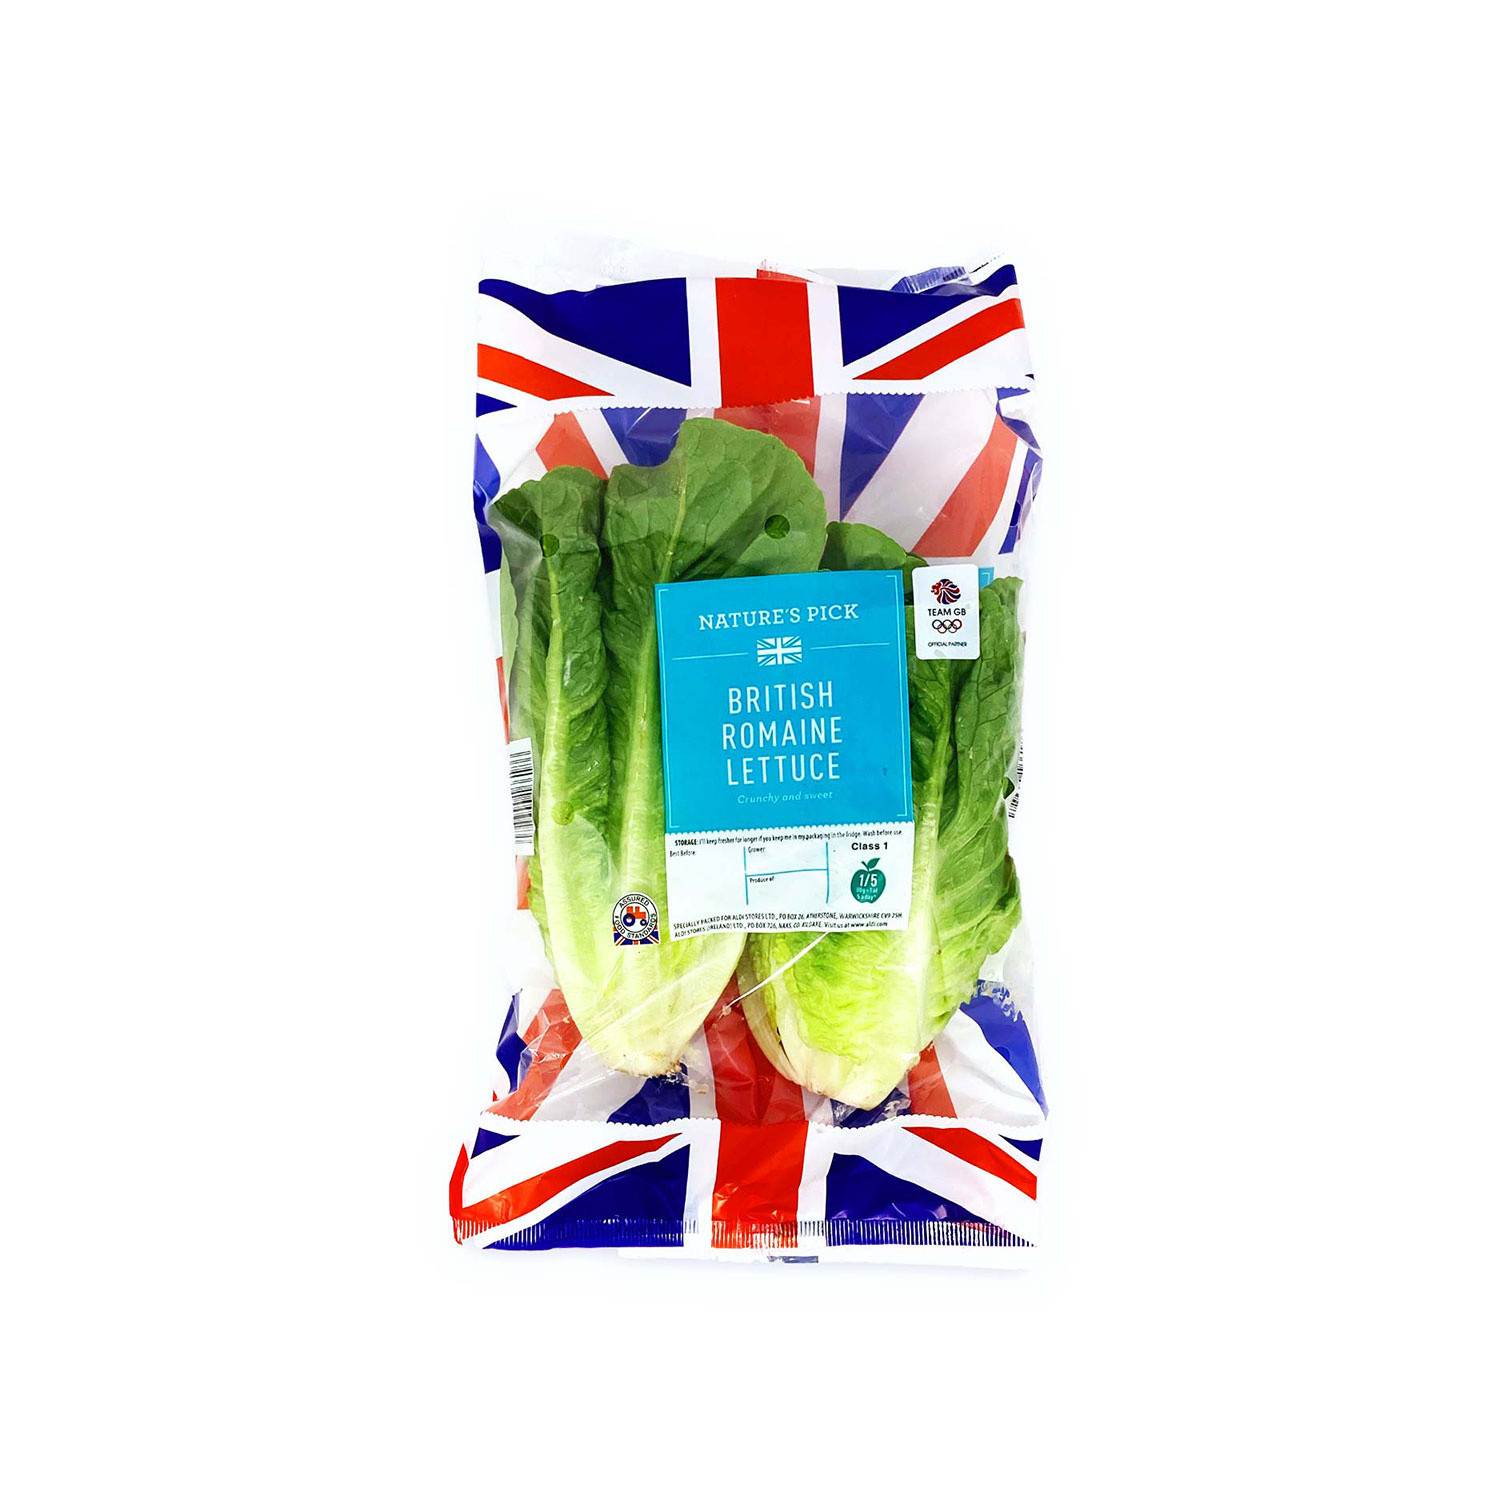 ALDI > Bakery > Nature's Pick Romaine Lettuce 2 Pack